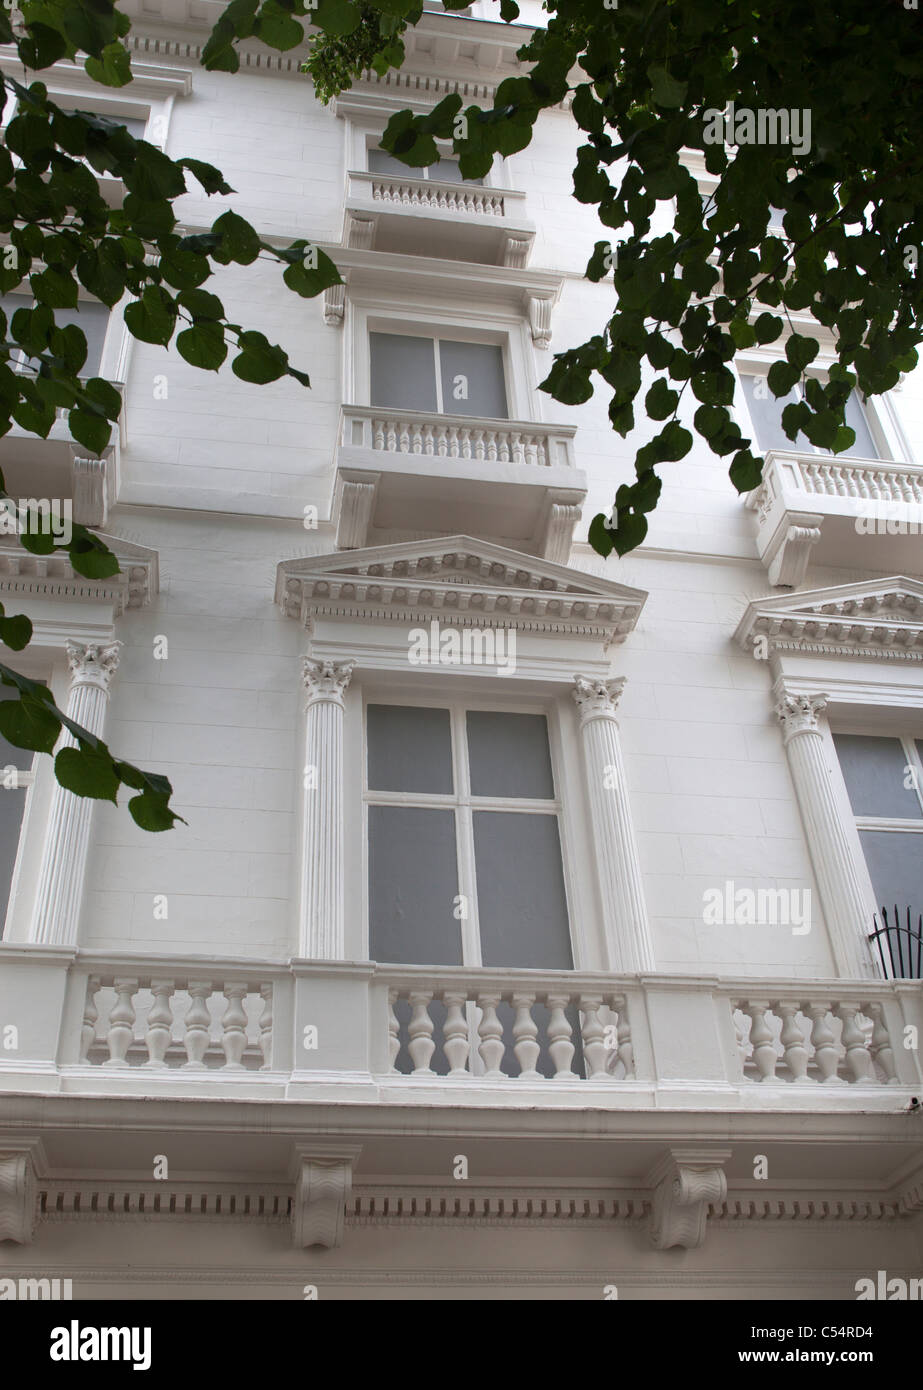 .23 and 24 Leinster Gardens London with False Building Facade - Stock Image